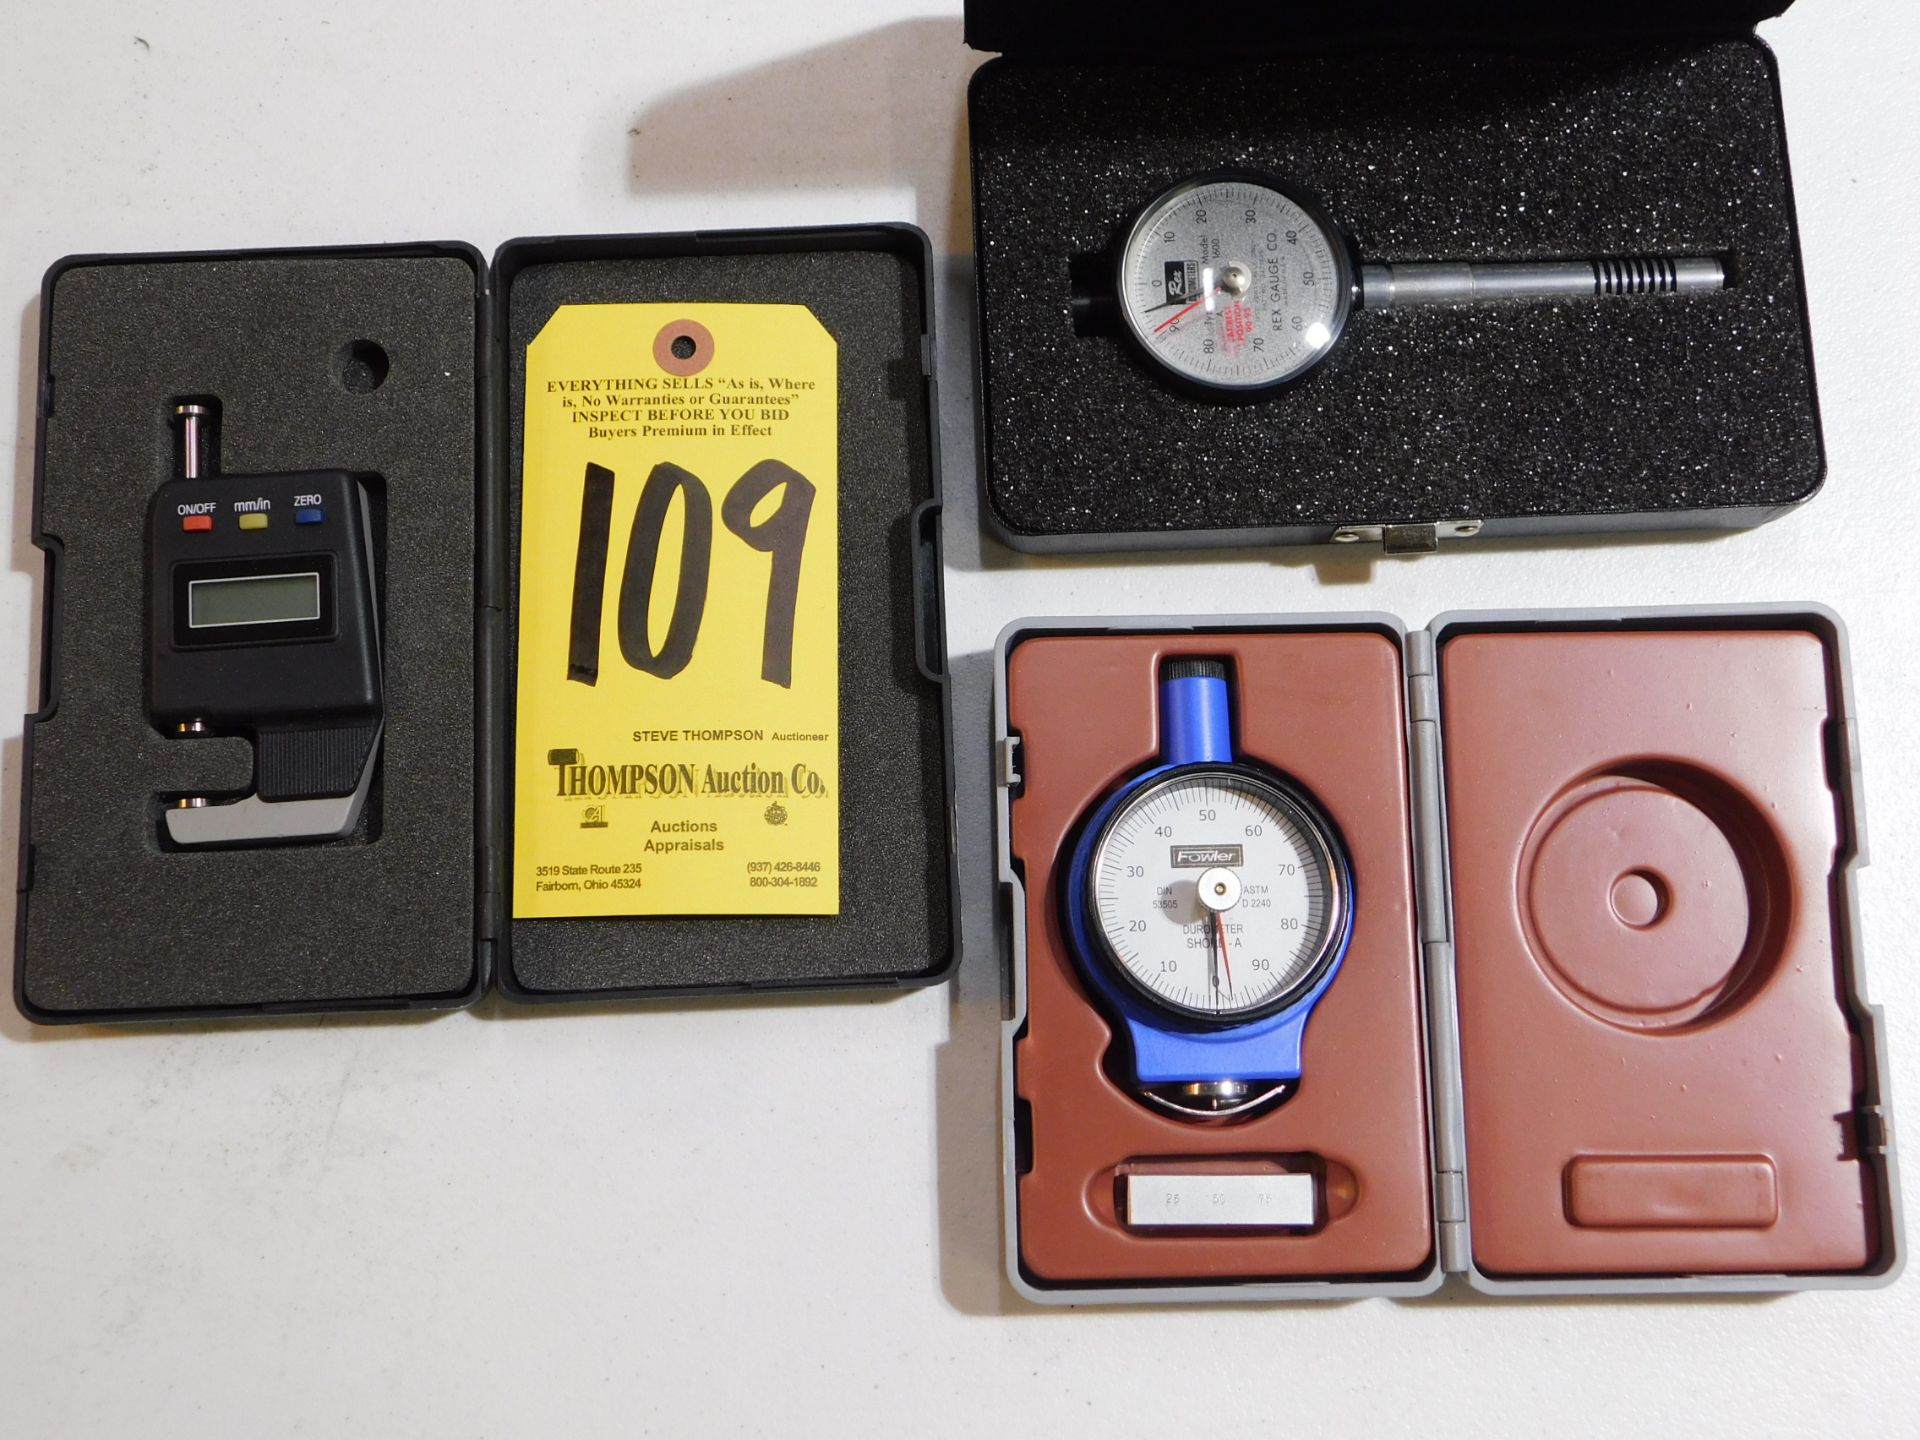 Lot 109 - Caprock Digital Pocket Thickness Gage, Rex Model 1600 Durometer Gage, and Fowler Durometer Gage, Lot